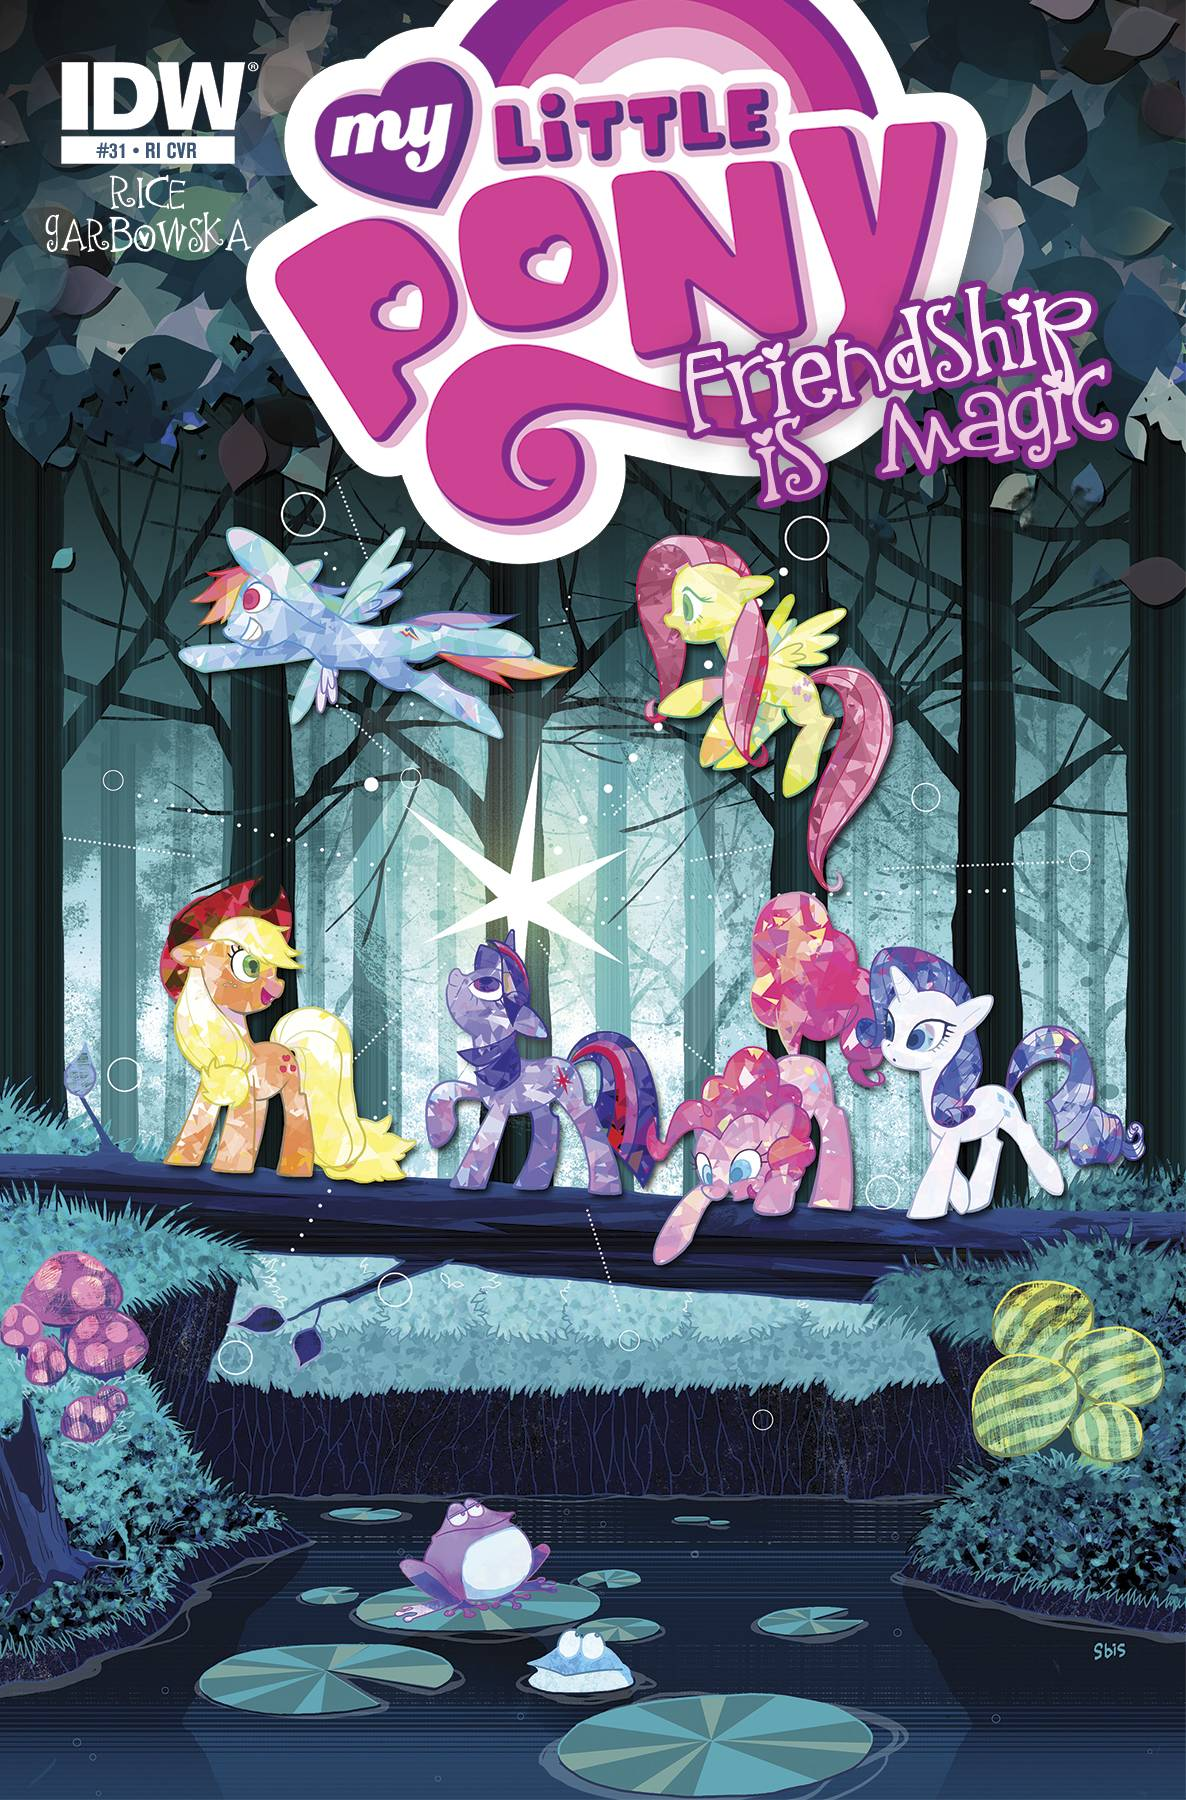 Think, that my little pony friendship is magic cover something